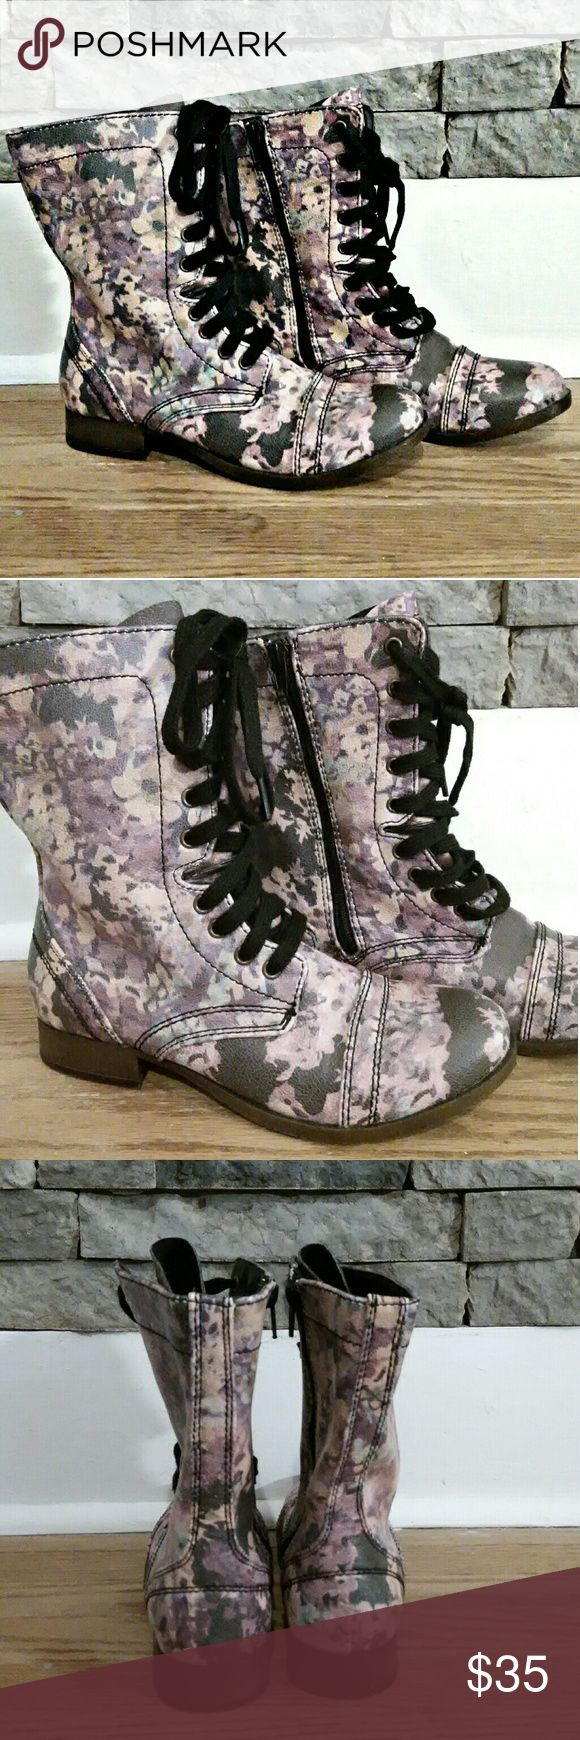 New Candies floral combat boots size 6 1/2 New never worn, Candies floral combat boots, size 6 1/2. Candie's Shoes Combat & Moto Boots